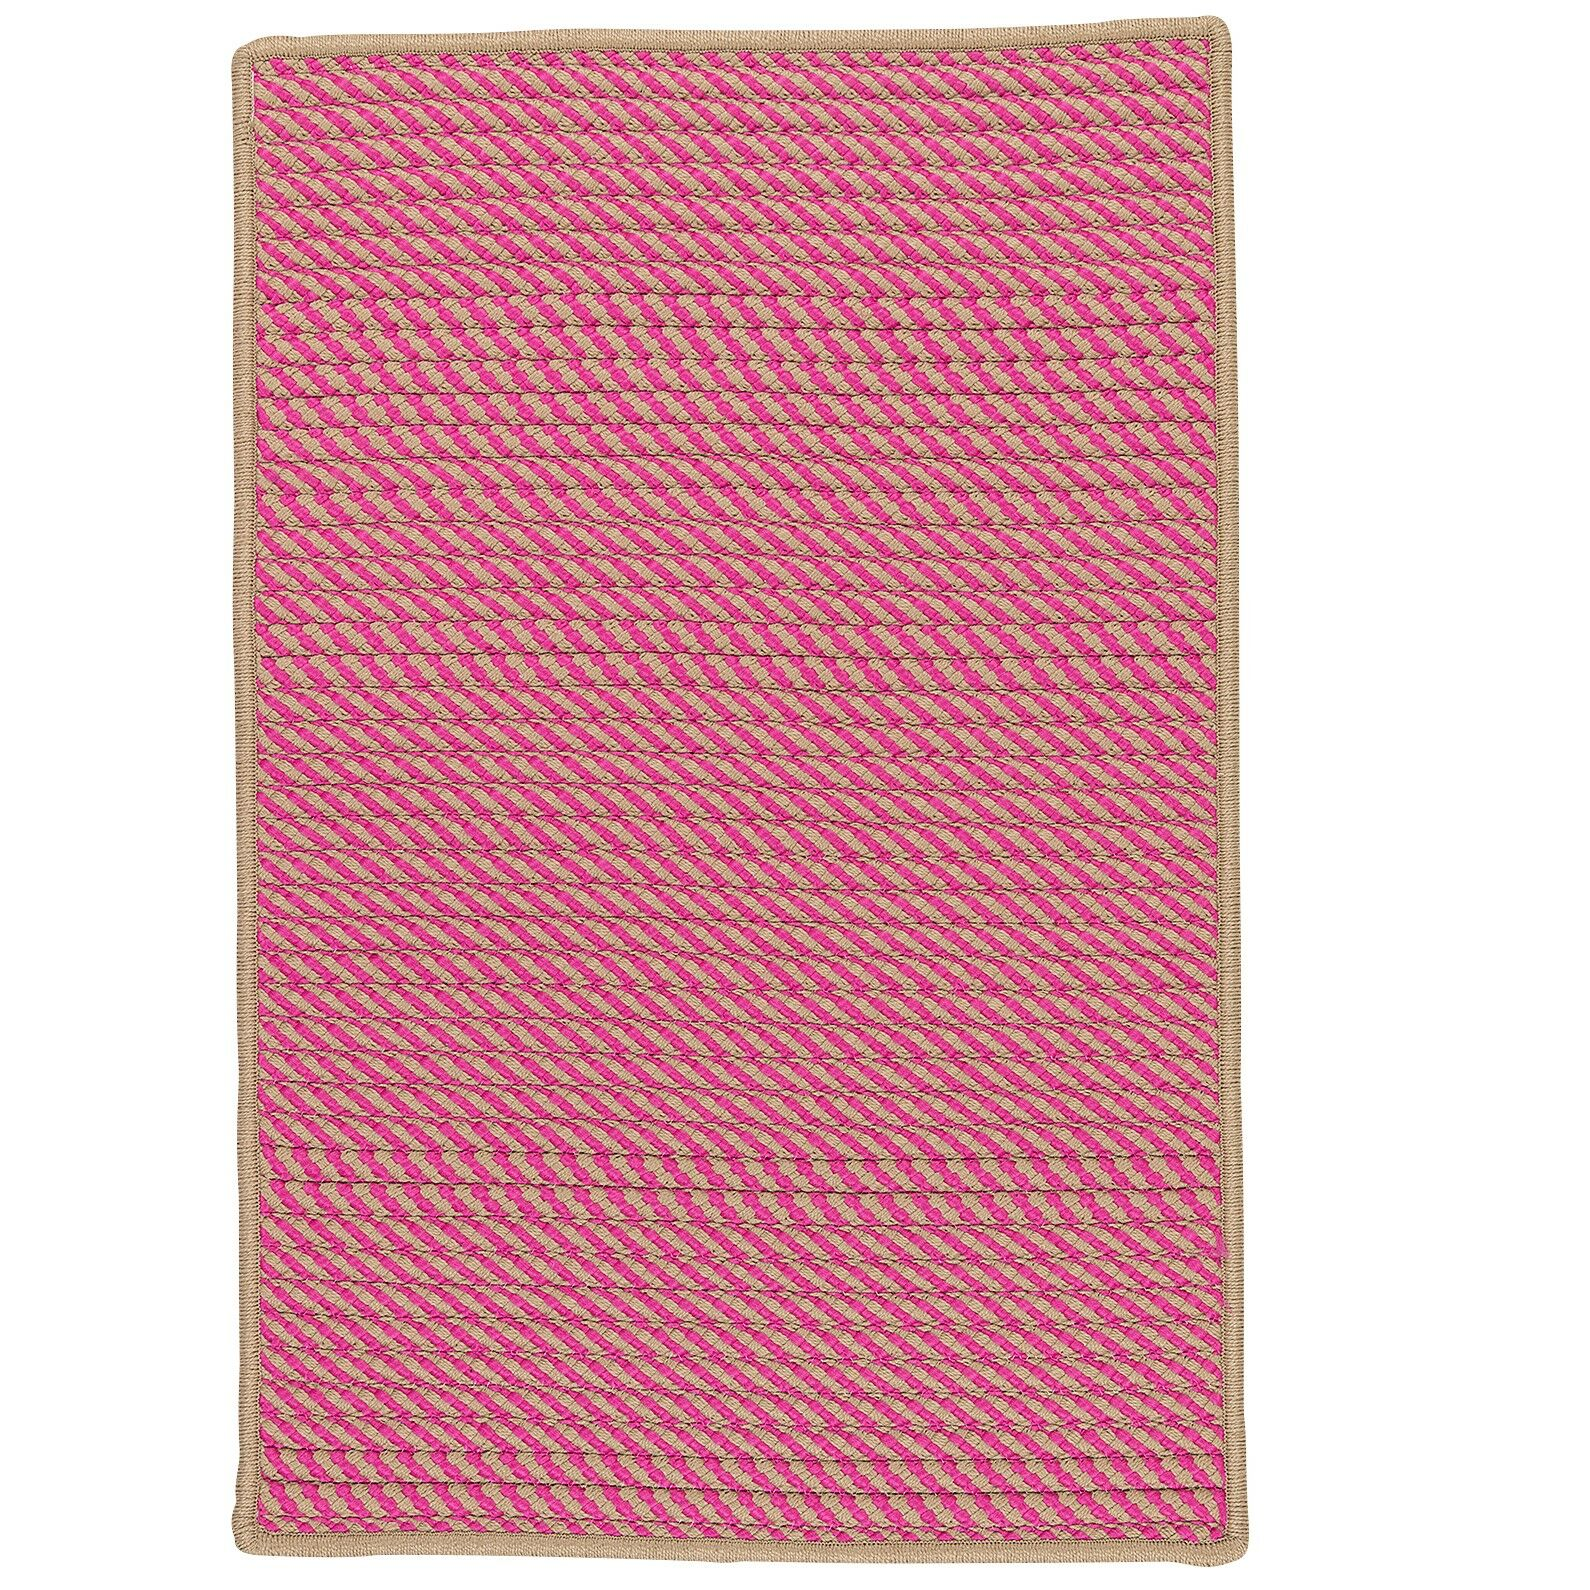 Mammari Hand-Woven Pink Indoor/Outdoor Area Rug Rug Size: Rectangle 8' x 11'